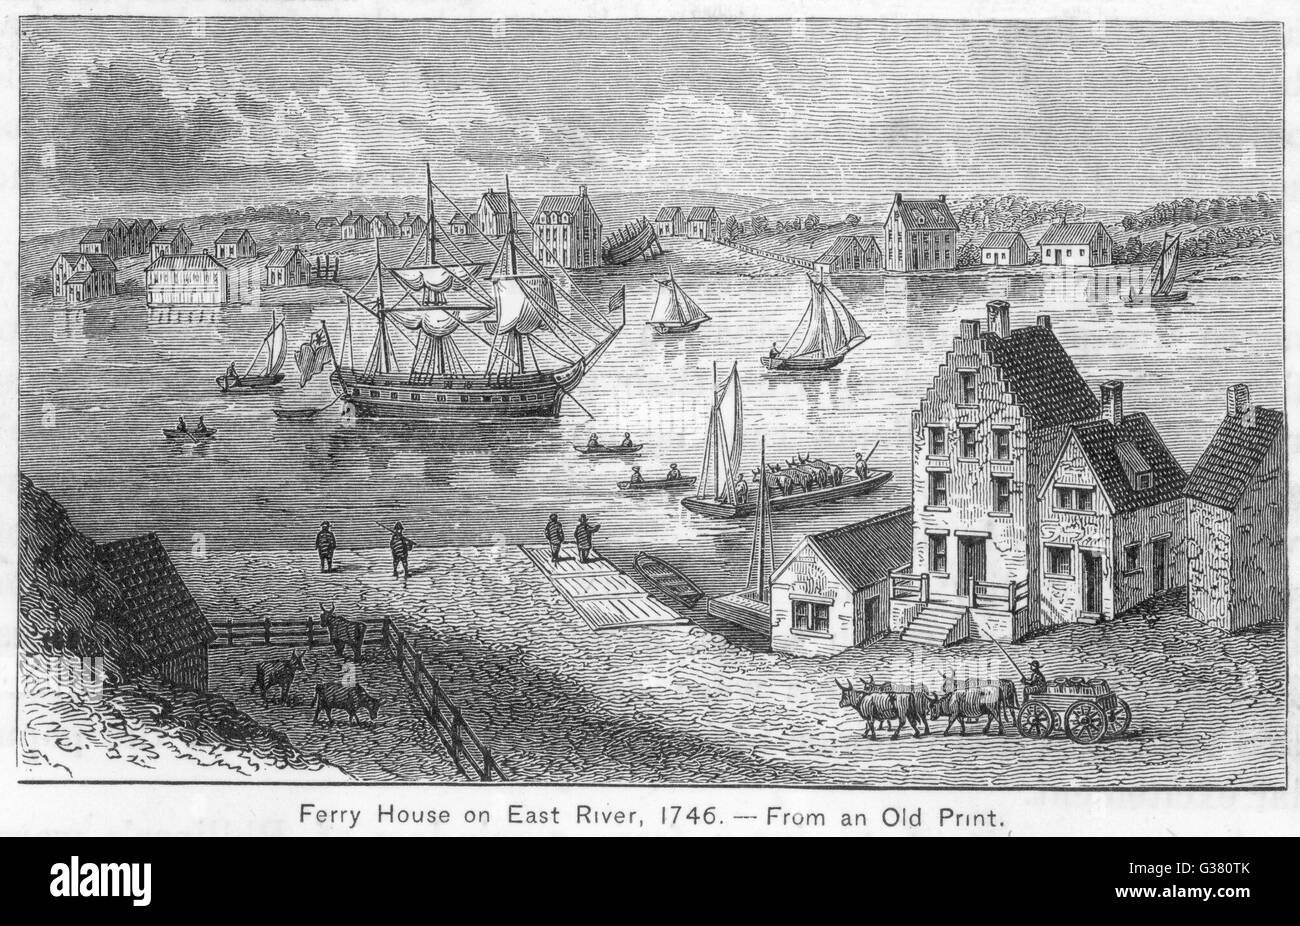 New York: Ferry House on the East River Date: 1746